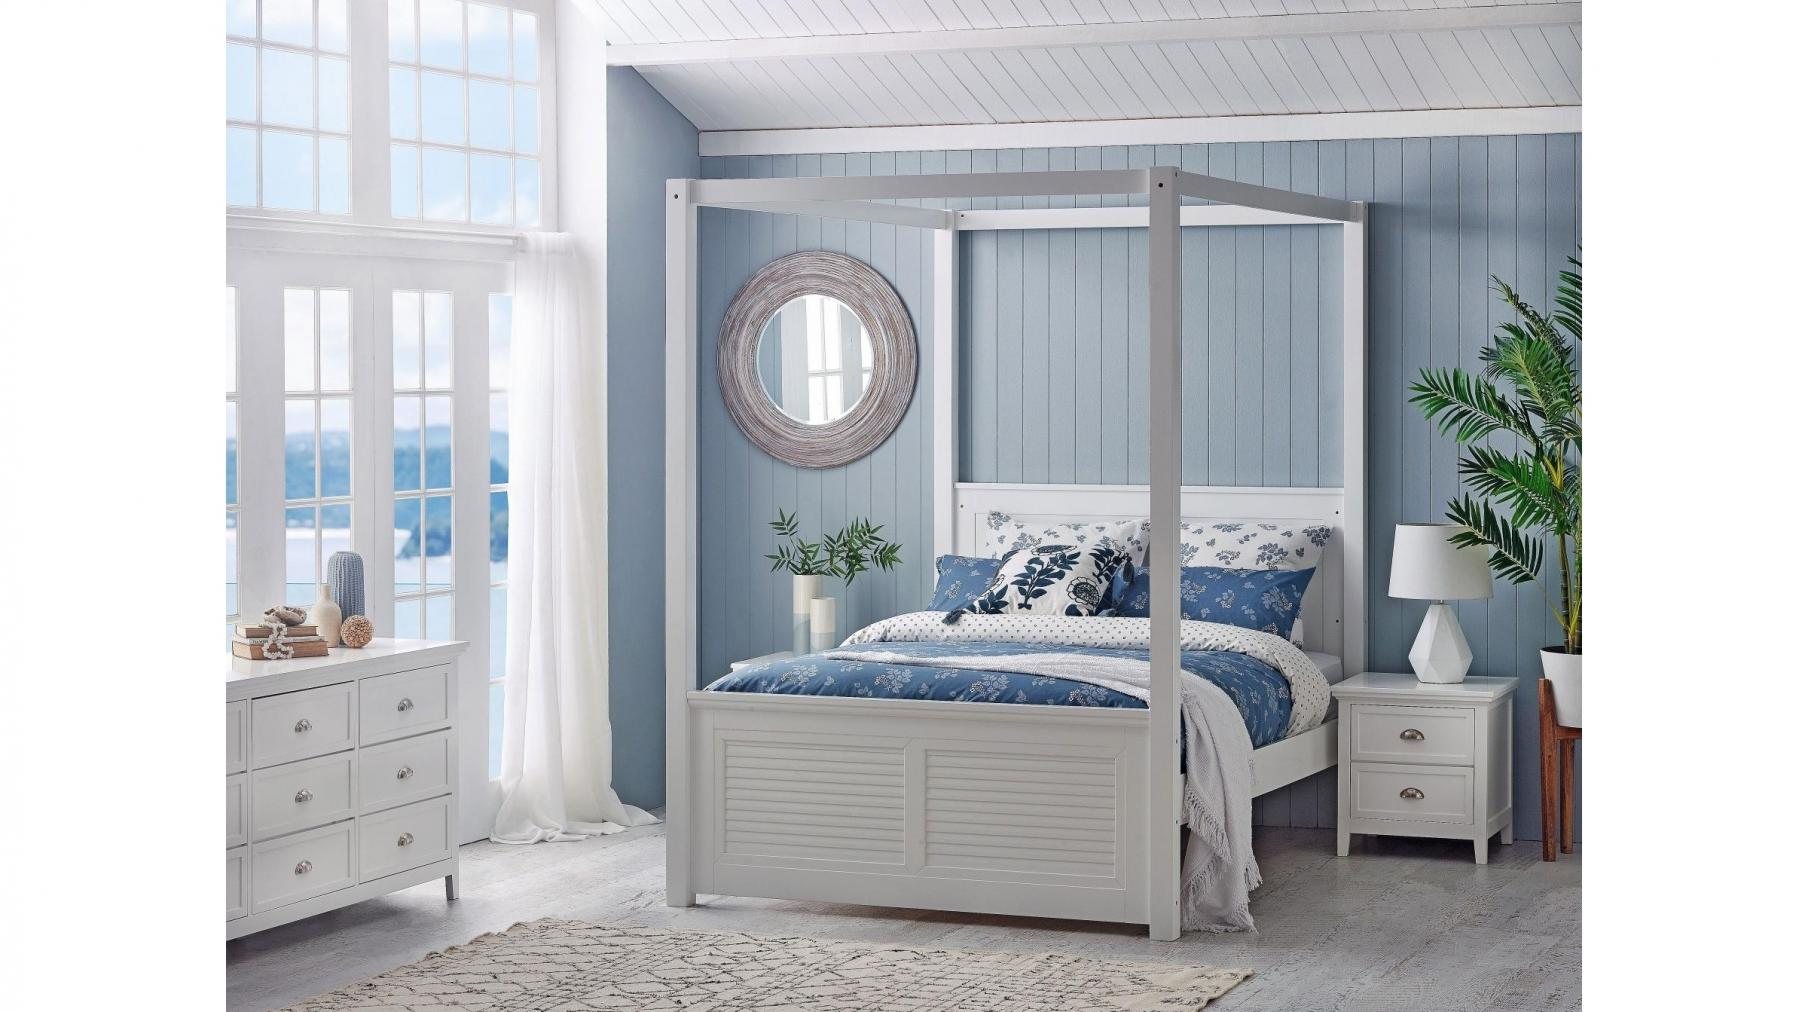 Picture of: Buy Lilly 4 Poster Bed Queen Harvey Norman Au